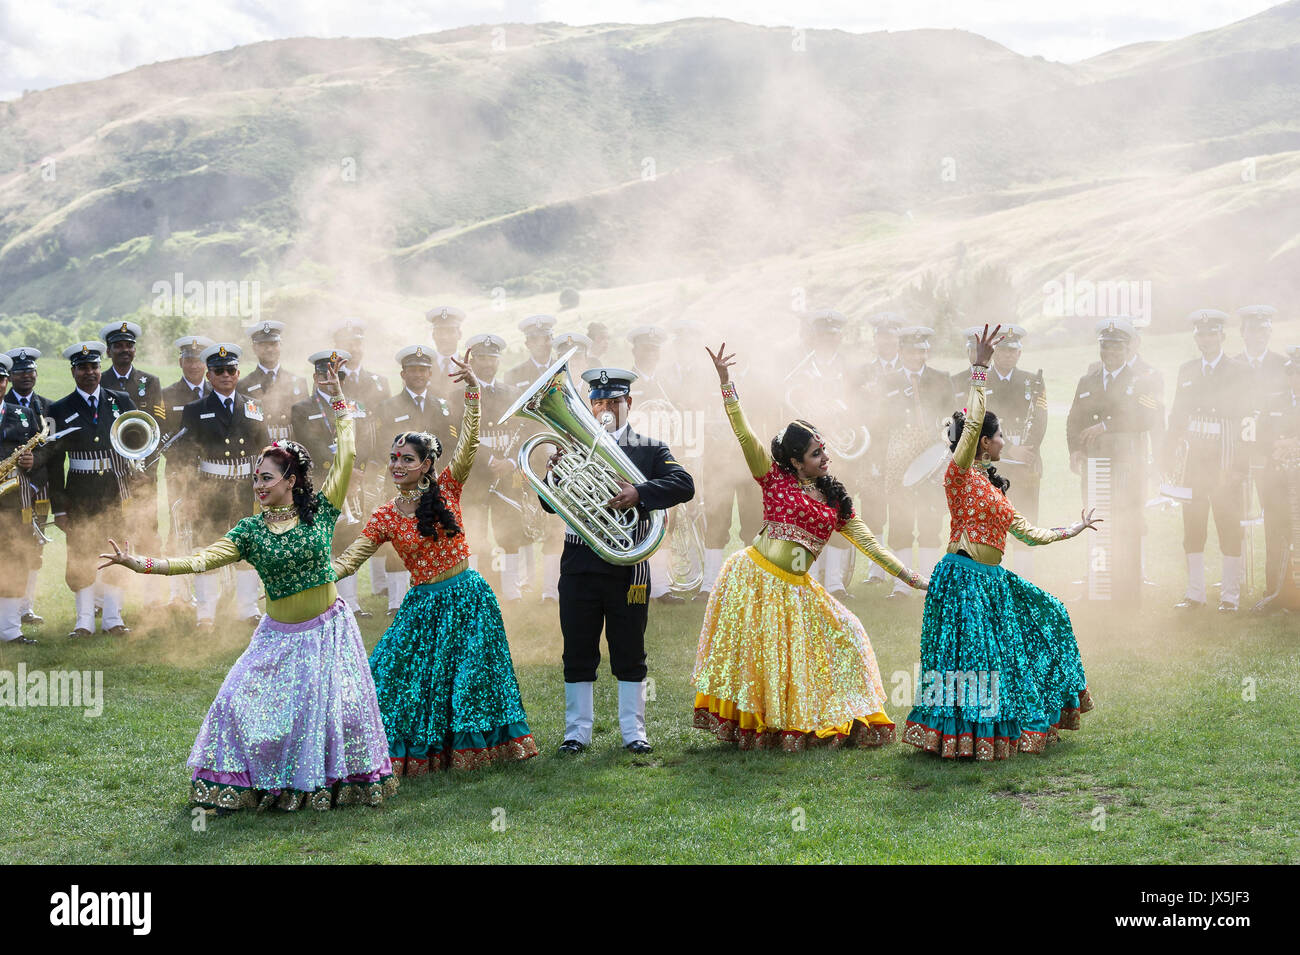 Edinburgh, UK. 15th Aug, 2017. As part of the UK-India Year of Culture 2017 and Indian Independence Day Celebrations - Stock Image